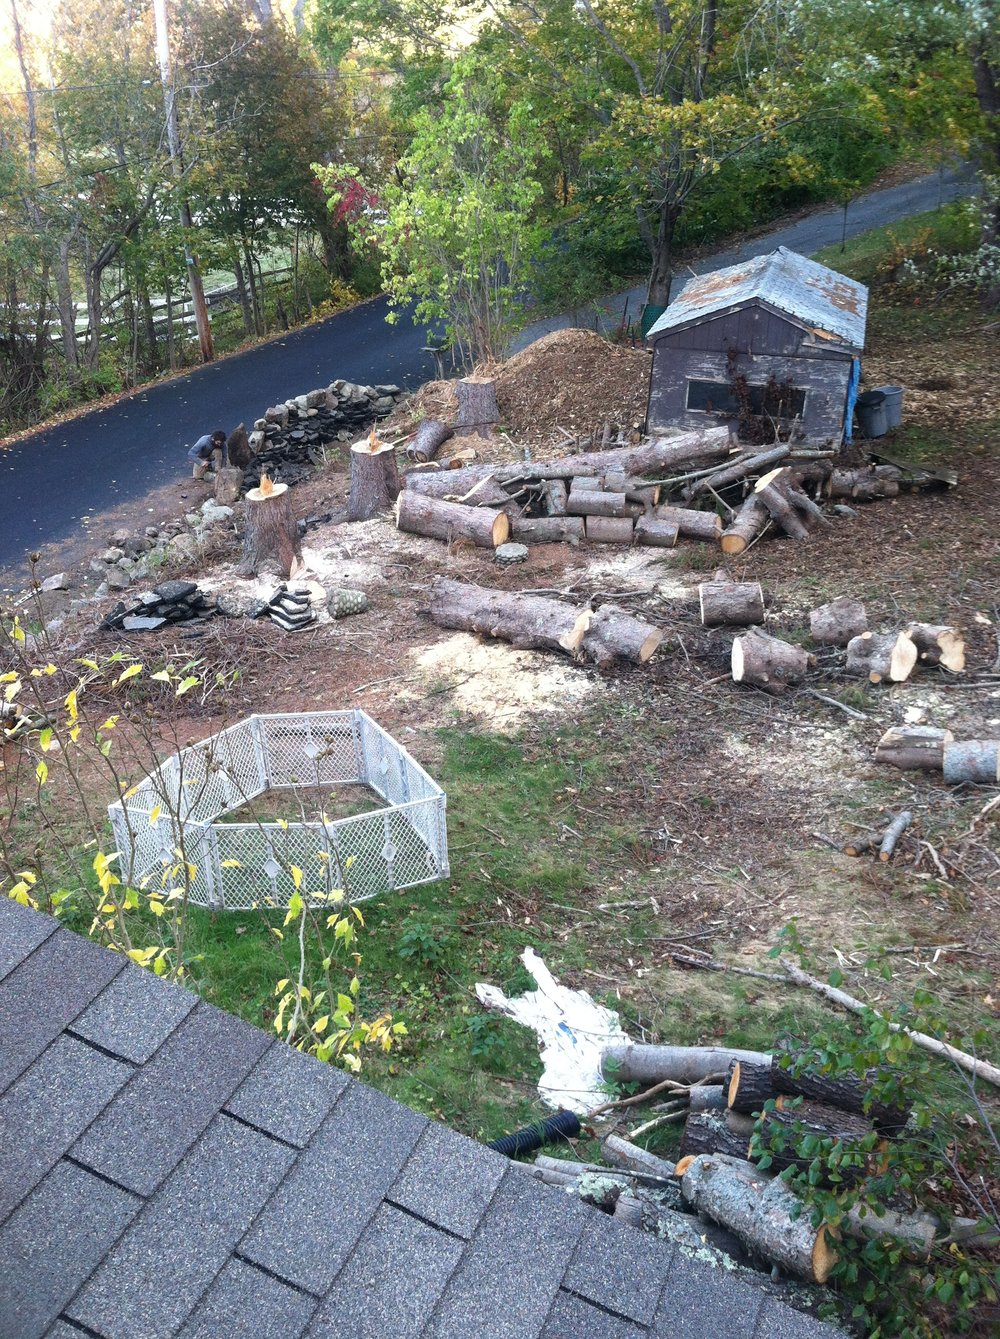 """October 2015  Johnny rebuilding the wall along the road, instead of a very low 1 ft wall, this will be a five foot wall, along the back to be flat, instead of sloping down to the road. Huge spruces are down, but stumps are still sticking up, later they will be cut down to below grade and are where the second hugelkultur bed now is. Giant wood chip pile that we will use everywhere. Log and brush piles everywhere. Separating out wood to split for indoor firewood and outdoor firewood. Rotting shed full of old trash and rodent awaiting to be removed. And lastly we borrowed a kid """"play pin"""" from a friend as an attempt to keep Anna (who was just over 1) contained and safe from the hazards of our projects…turns out she didn't like being put in a cage…go figure."""